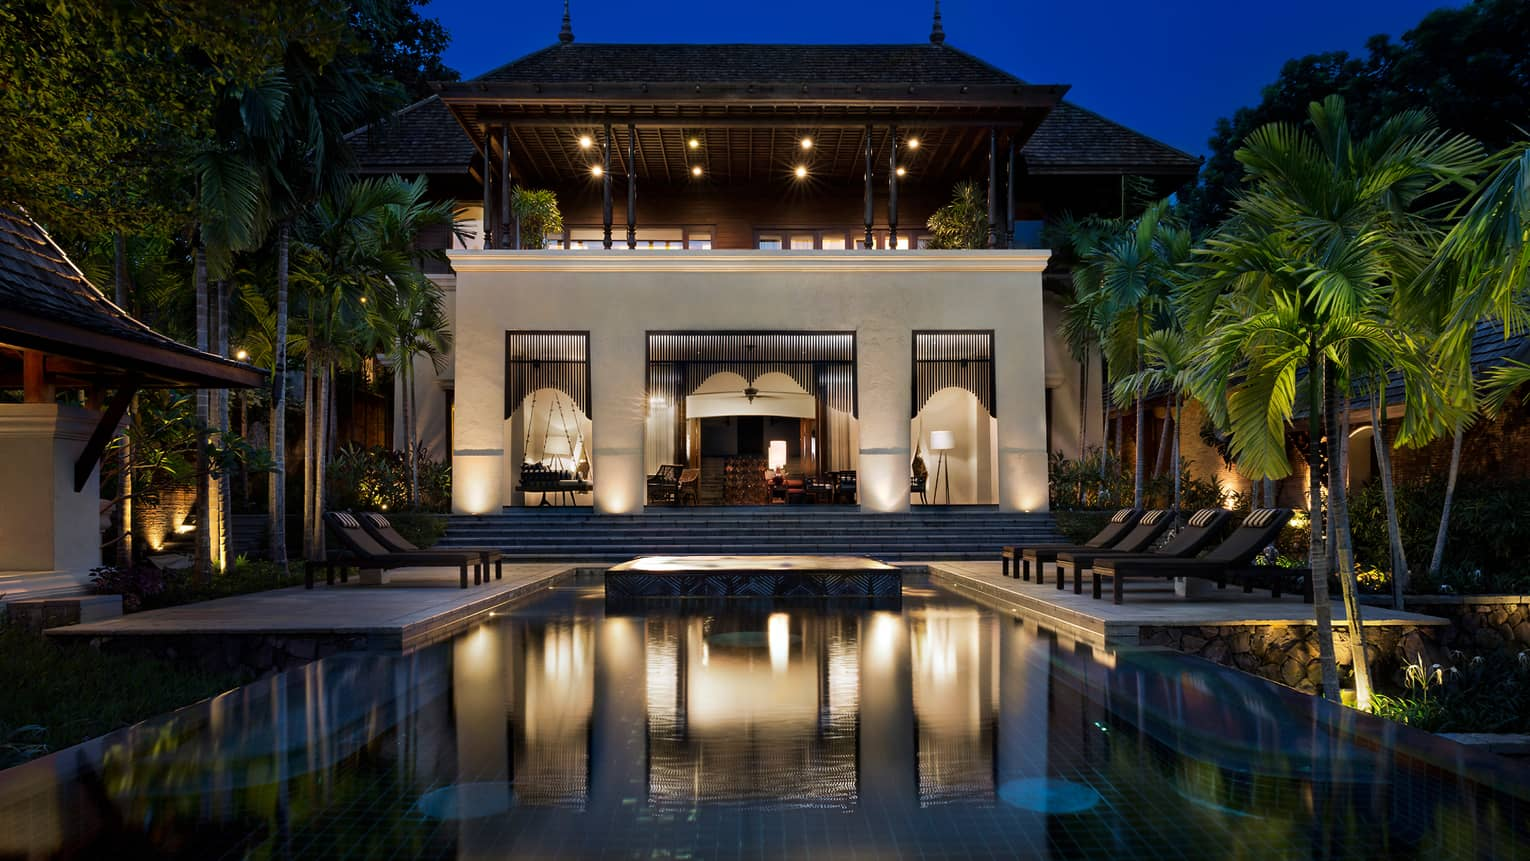 Large Four-Bedroom Residence Villa at night with lights, outdoor pool and palms